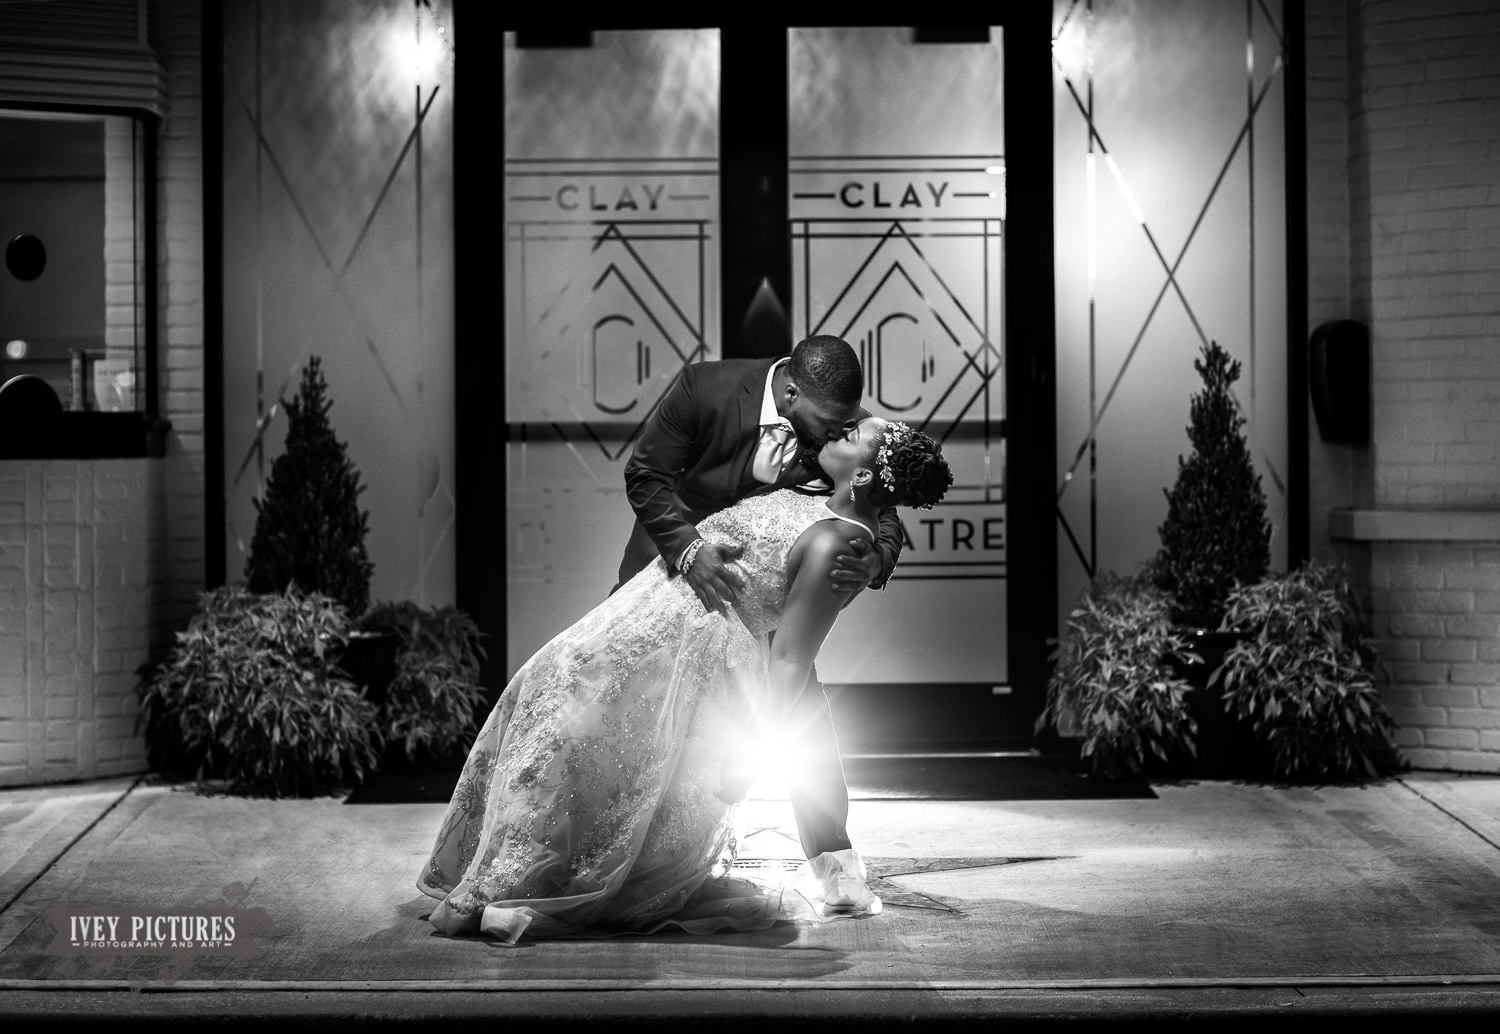 creative wedding photos in black and white